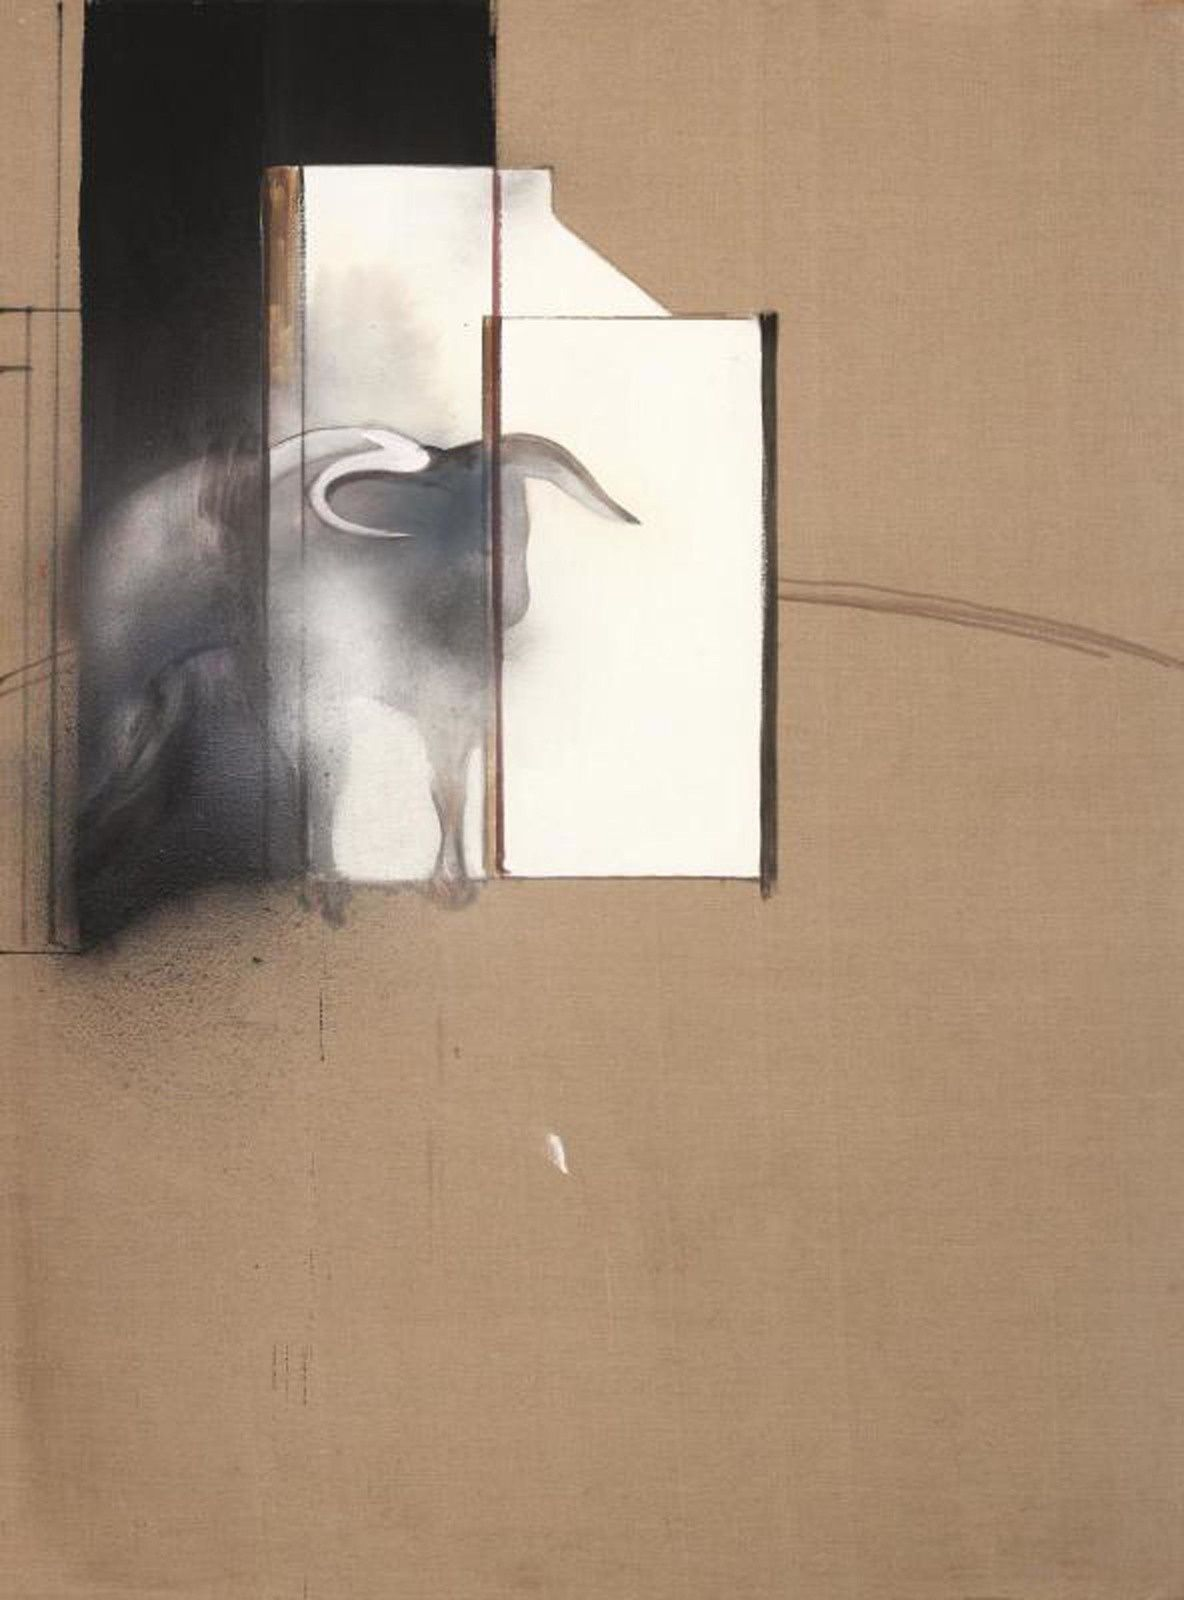 """Study of a Bull"", 1991 de Francis BACON - Collection Agnelli, londres © the estate of Francis bacon /all rights reserved / adagp, paris and dacs, london 2019 © the estate of Francis bacon. all rights reserved. dacs/ artimage 2019. photo: prudence cuming associates ltd"